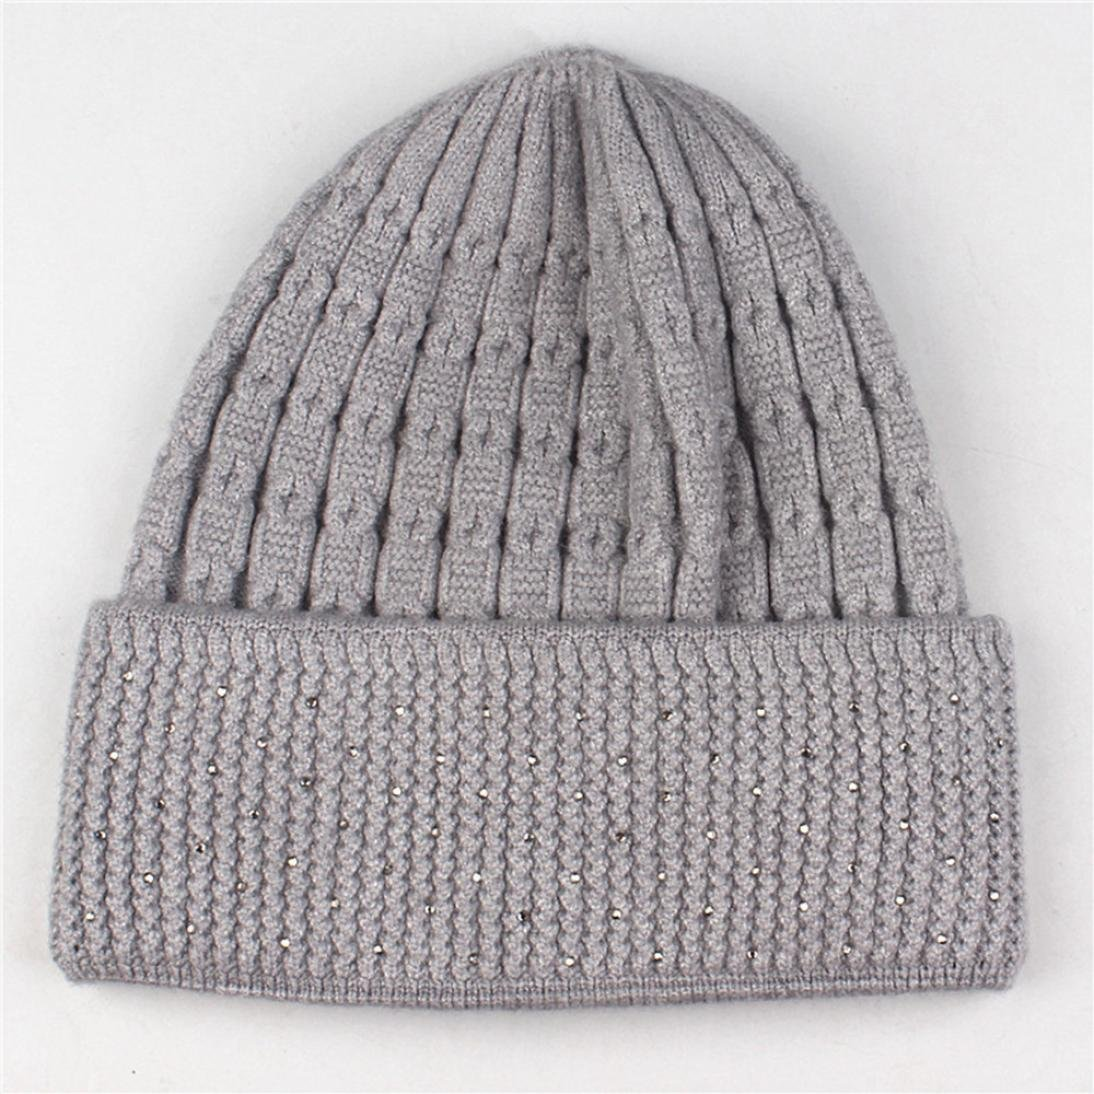 95b9e1f83f3 Amazon.com  WILLTOO Cable Knit Beanie - Clearance Thick